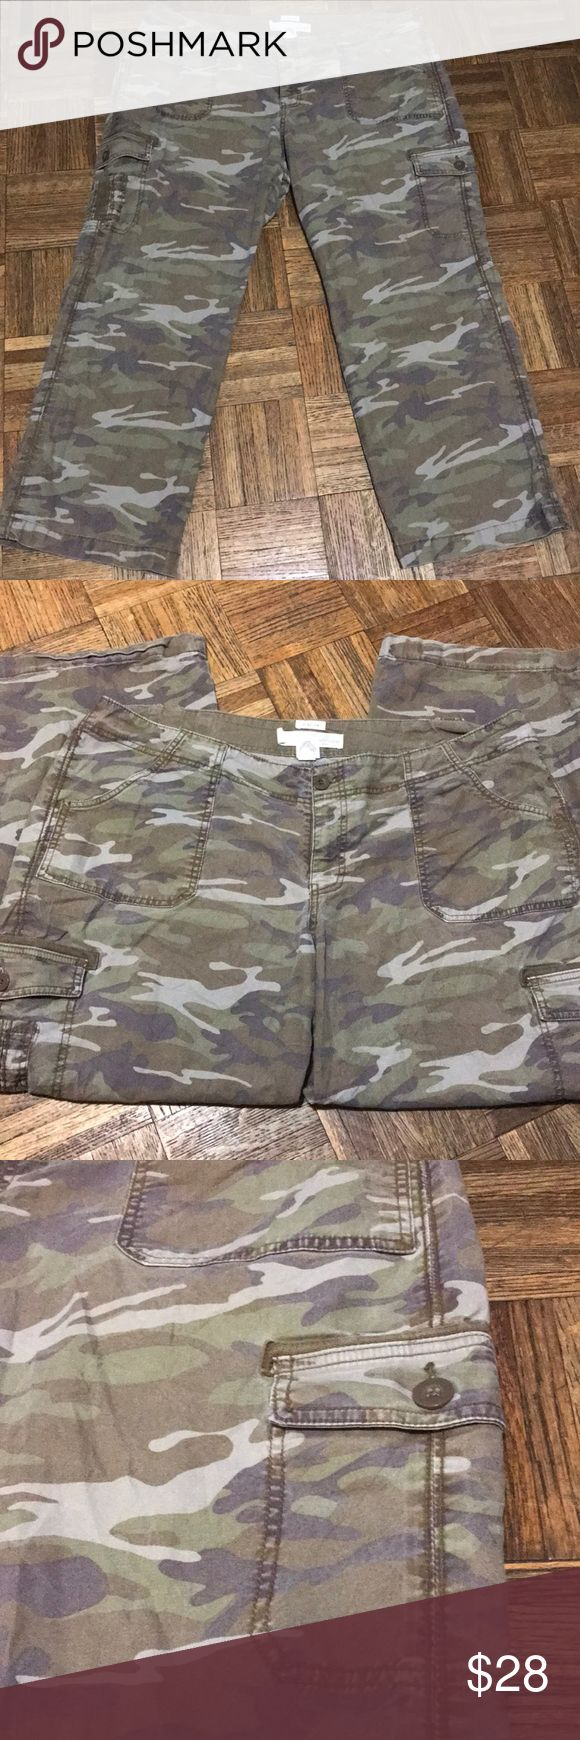 """Old Navy Women's Fatigue Cargo Pants Plus Size 20 This is a pair of Fatigue, Cargo Pants that are stretchy. They are in great condition. Inseam is approximately 29"""", Waist is about 21"""" and rise 10"""". Old Navy Pants"""